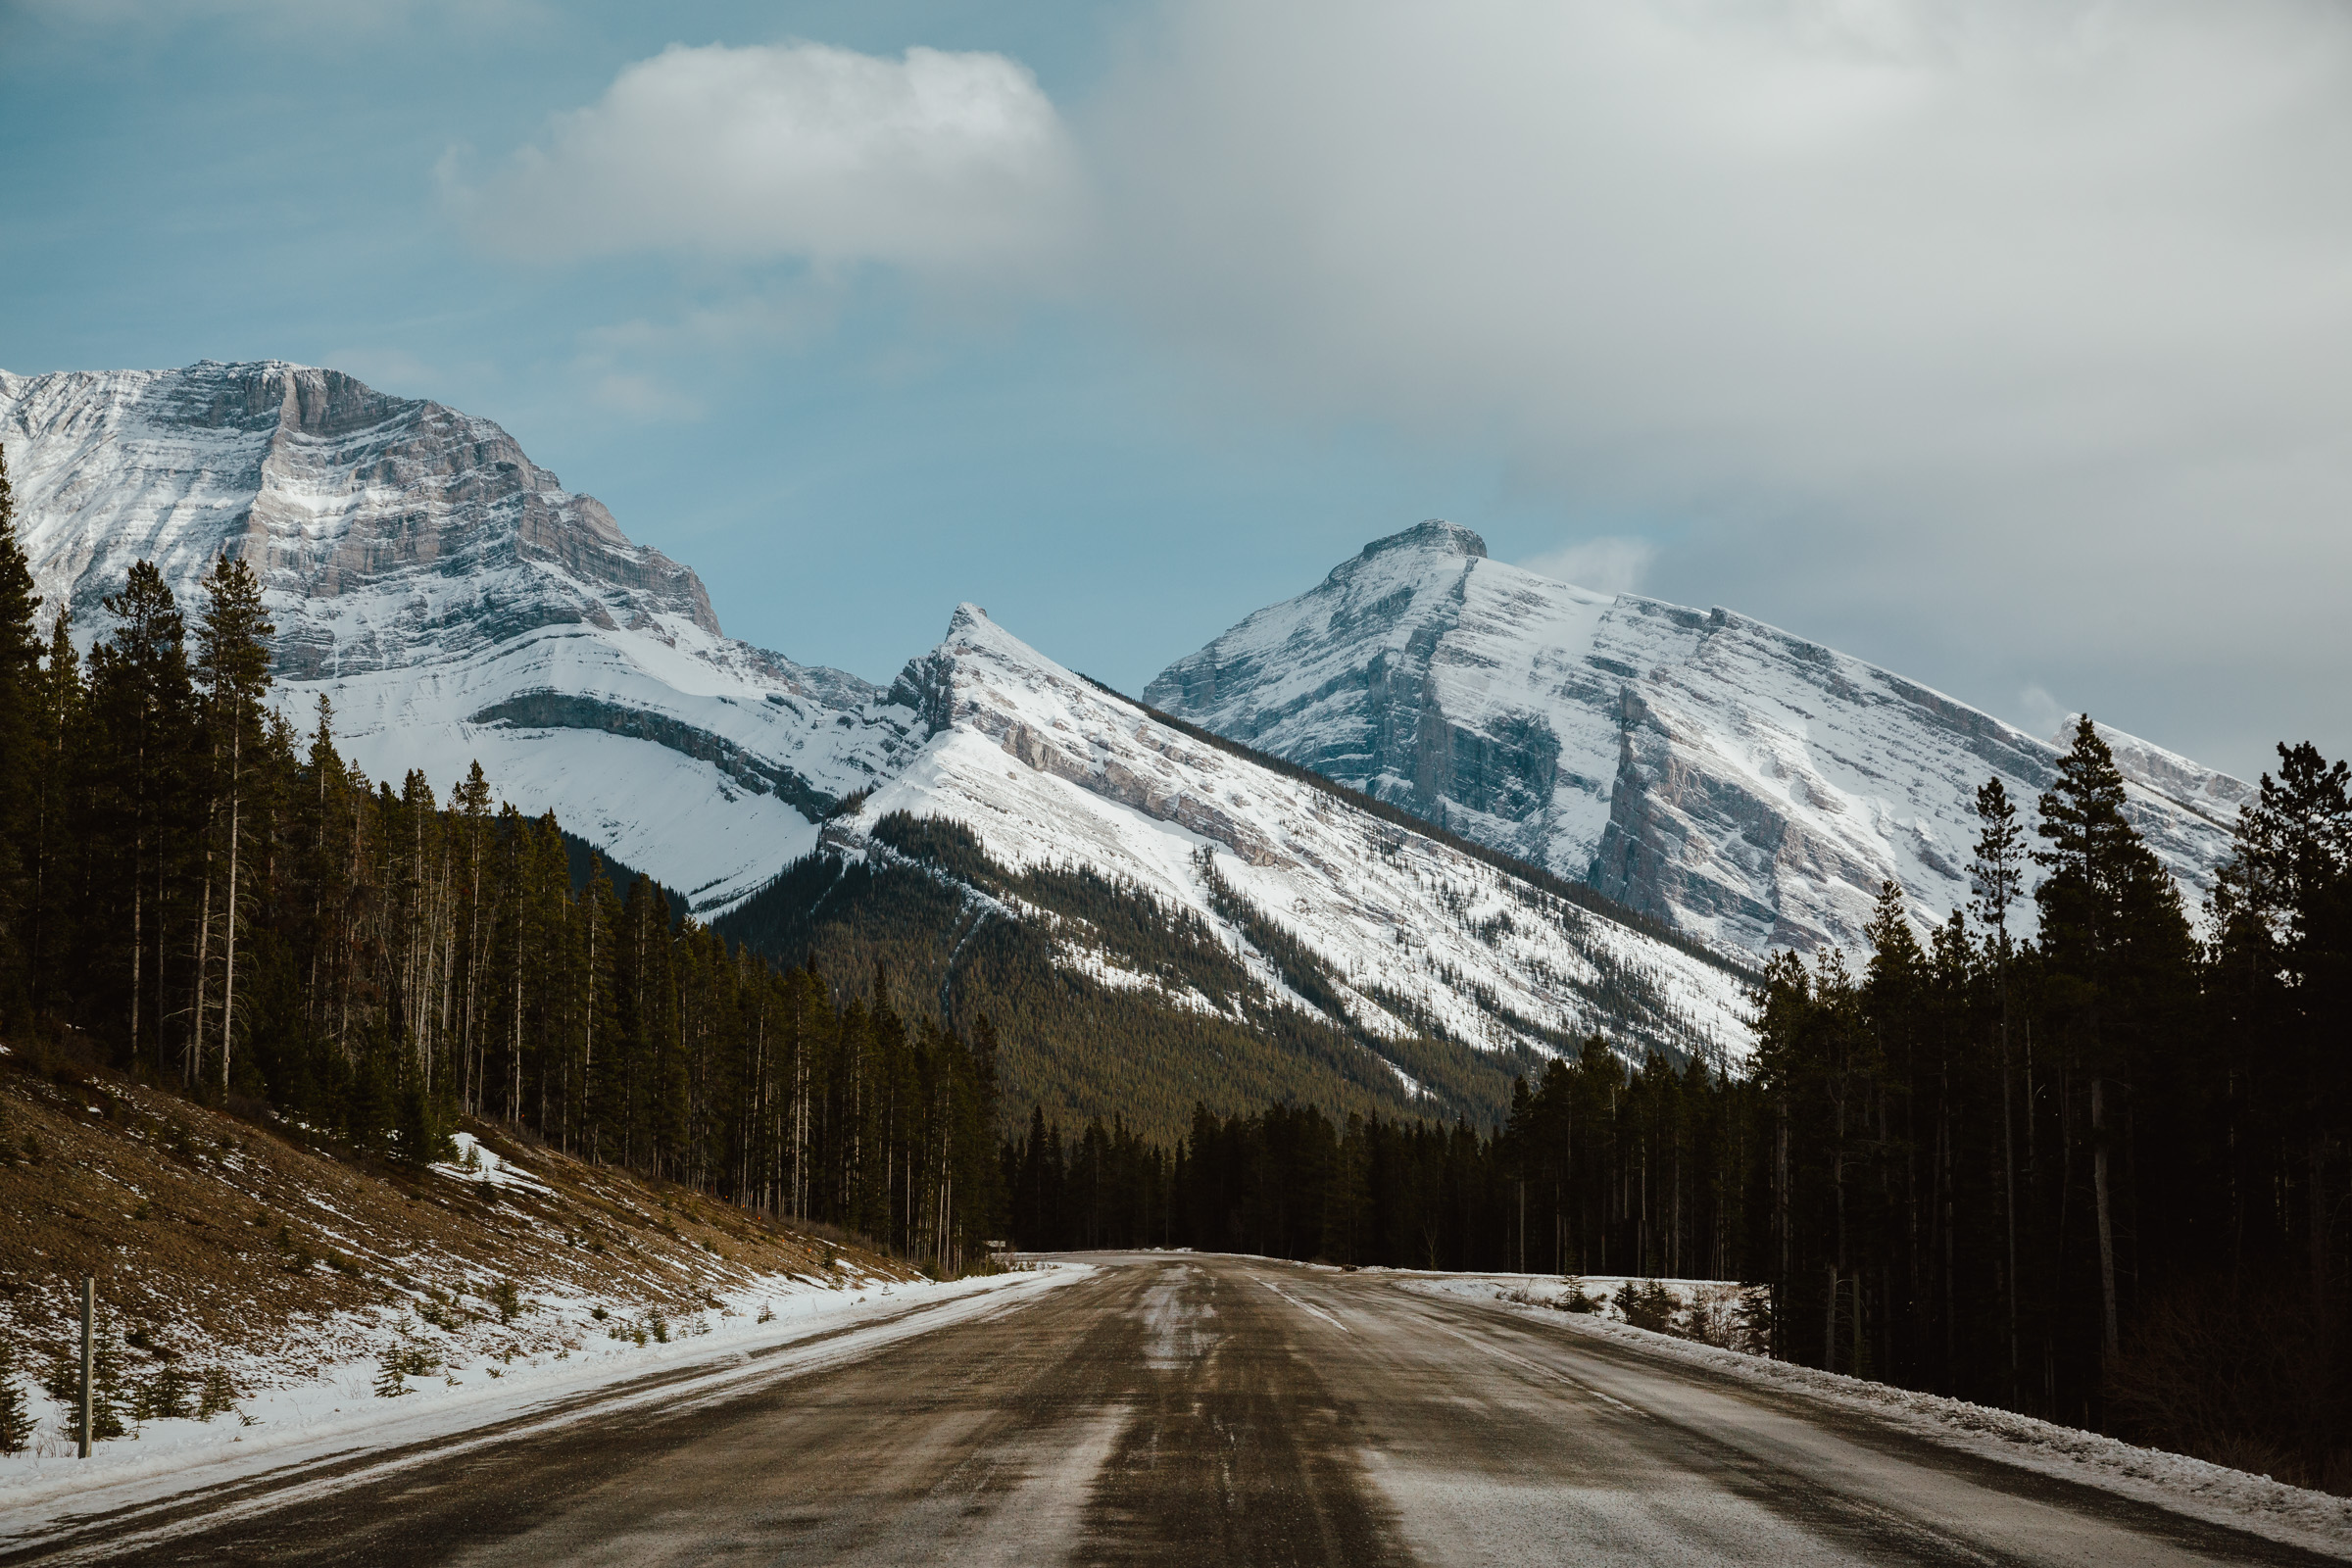 canada-alberta-lifestyle-photography-mikeseehagel-28